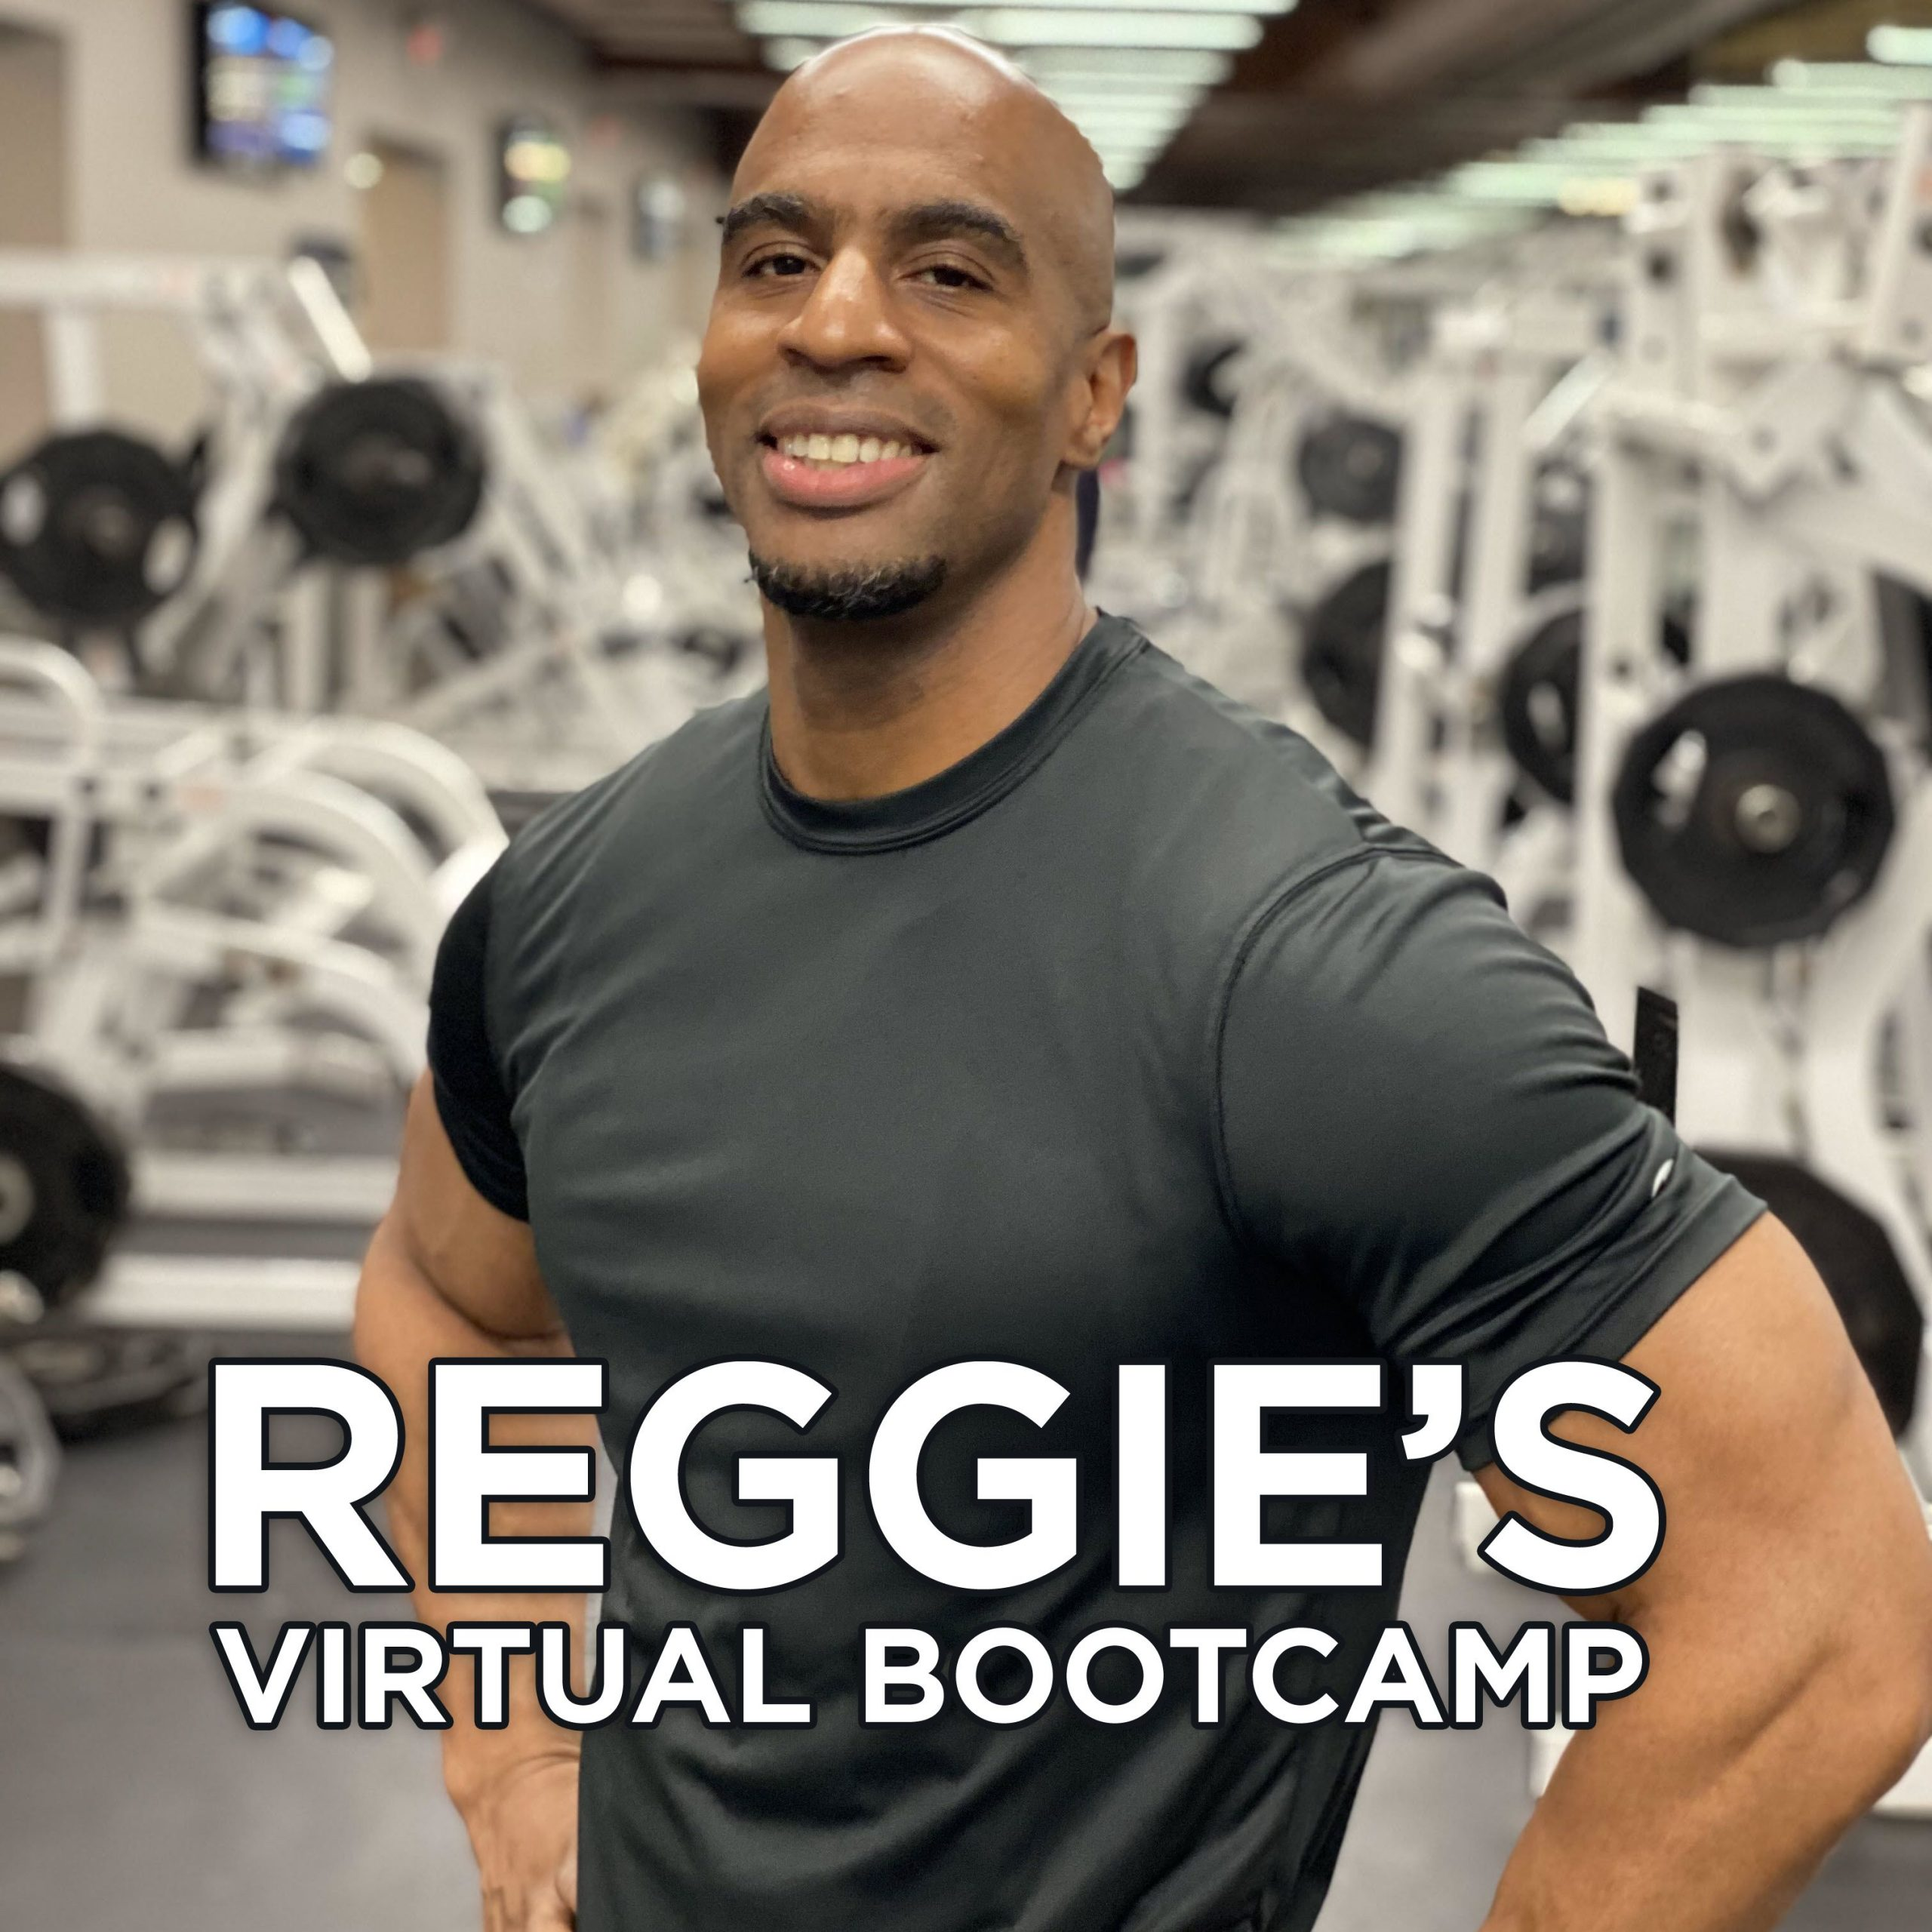 //www.goodforlifetraining.com/wp-content/uploads/2021/02/Reggie-virtual-Bootcamp-Square-03-compressed-scaled.jpg